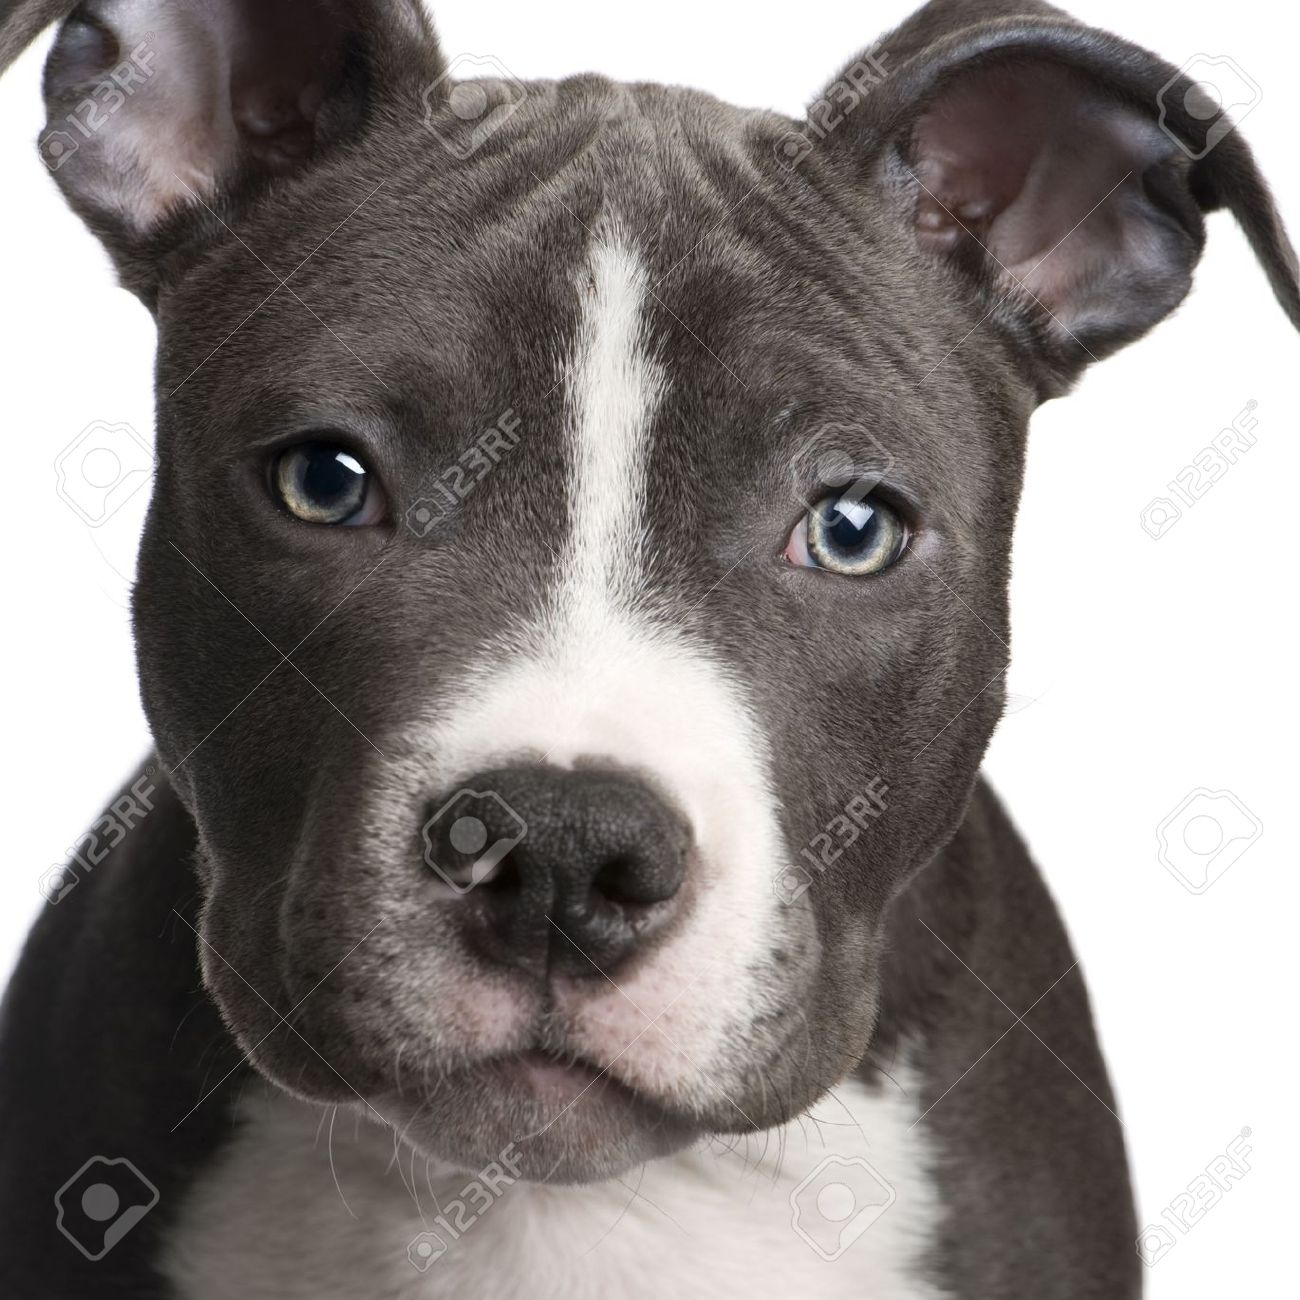 American Staffordshire Terrier American Staffordshire Terrier Dog Breed History And